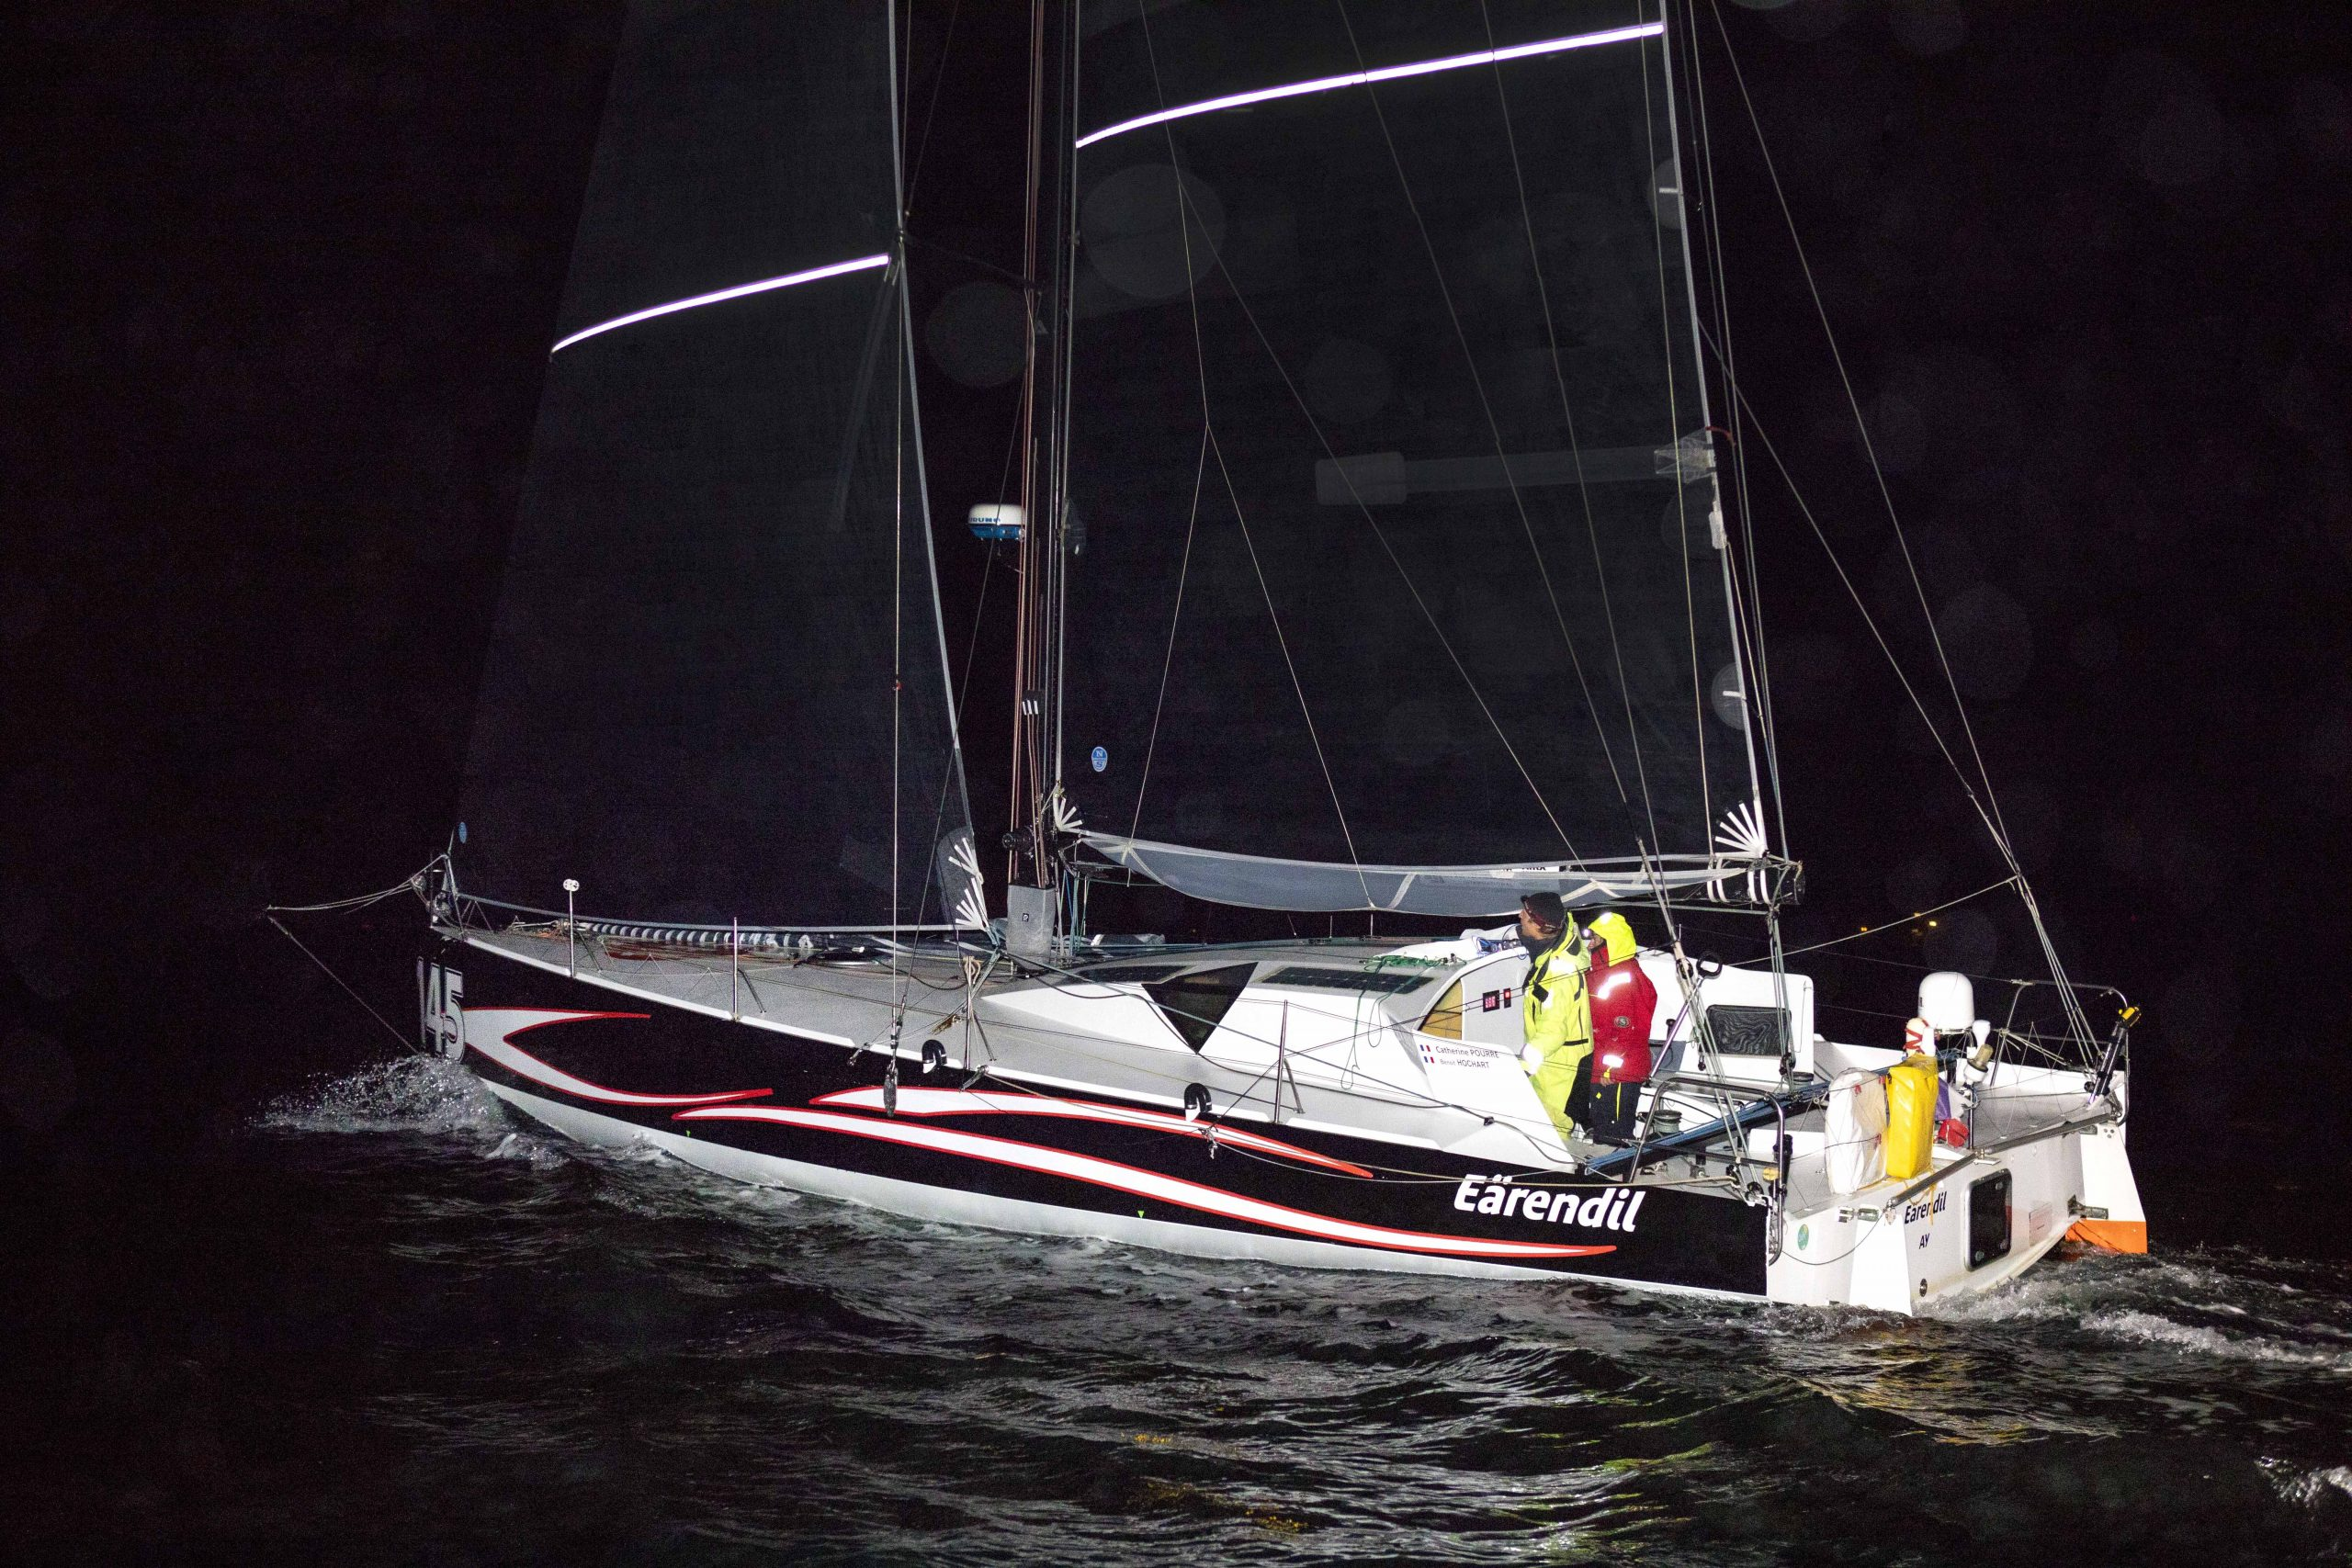 Eärendil finishes leg 2 of the Stlantic Cup in Portland